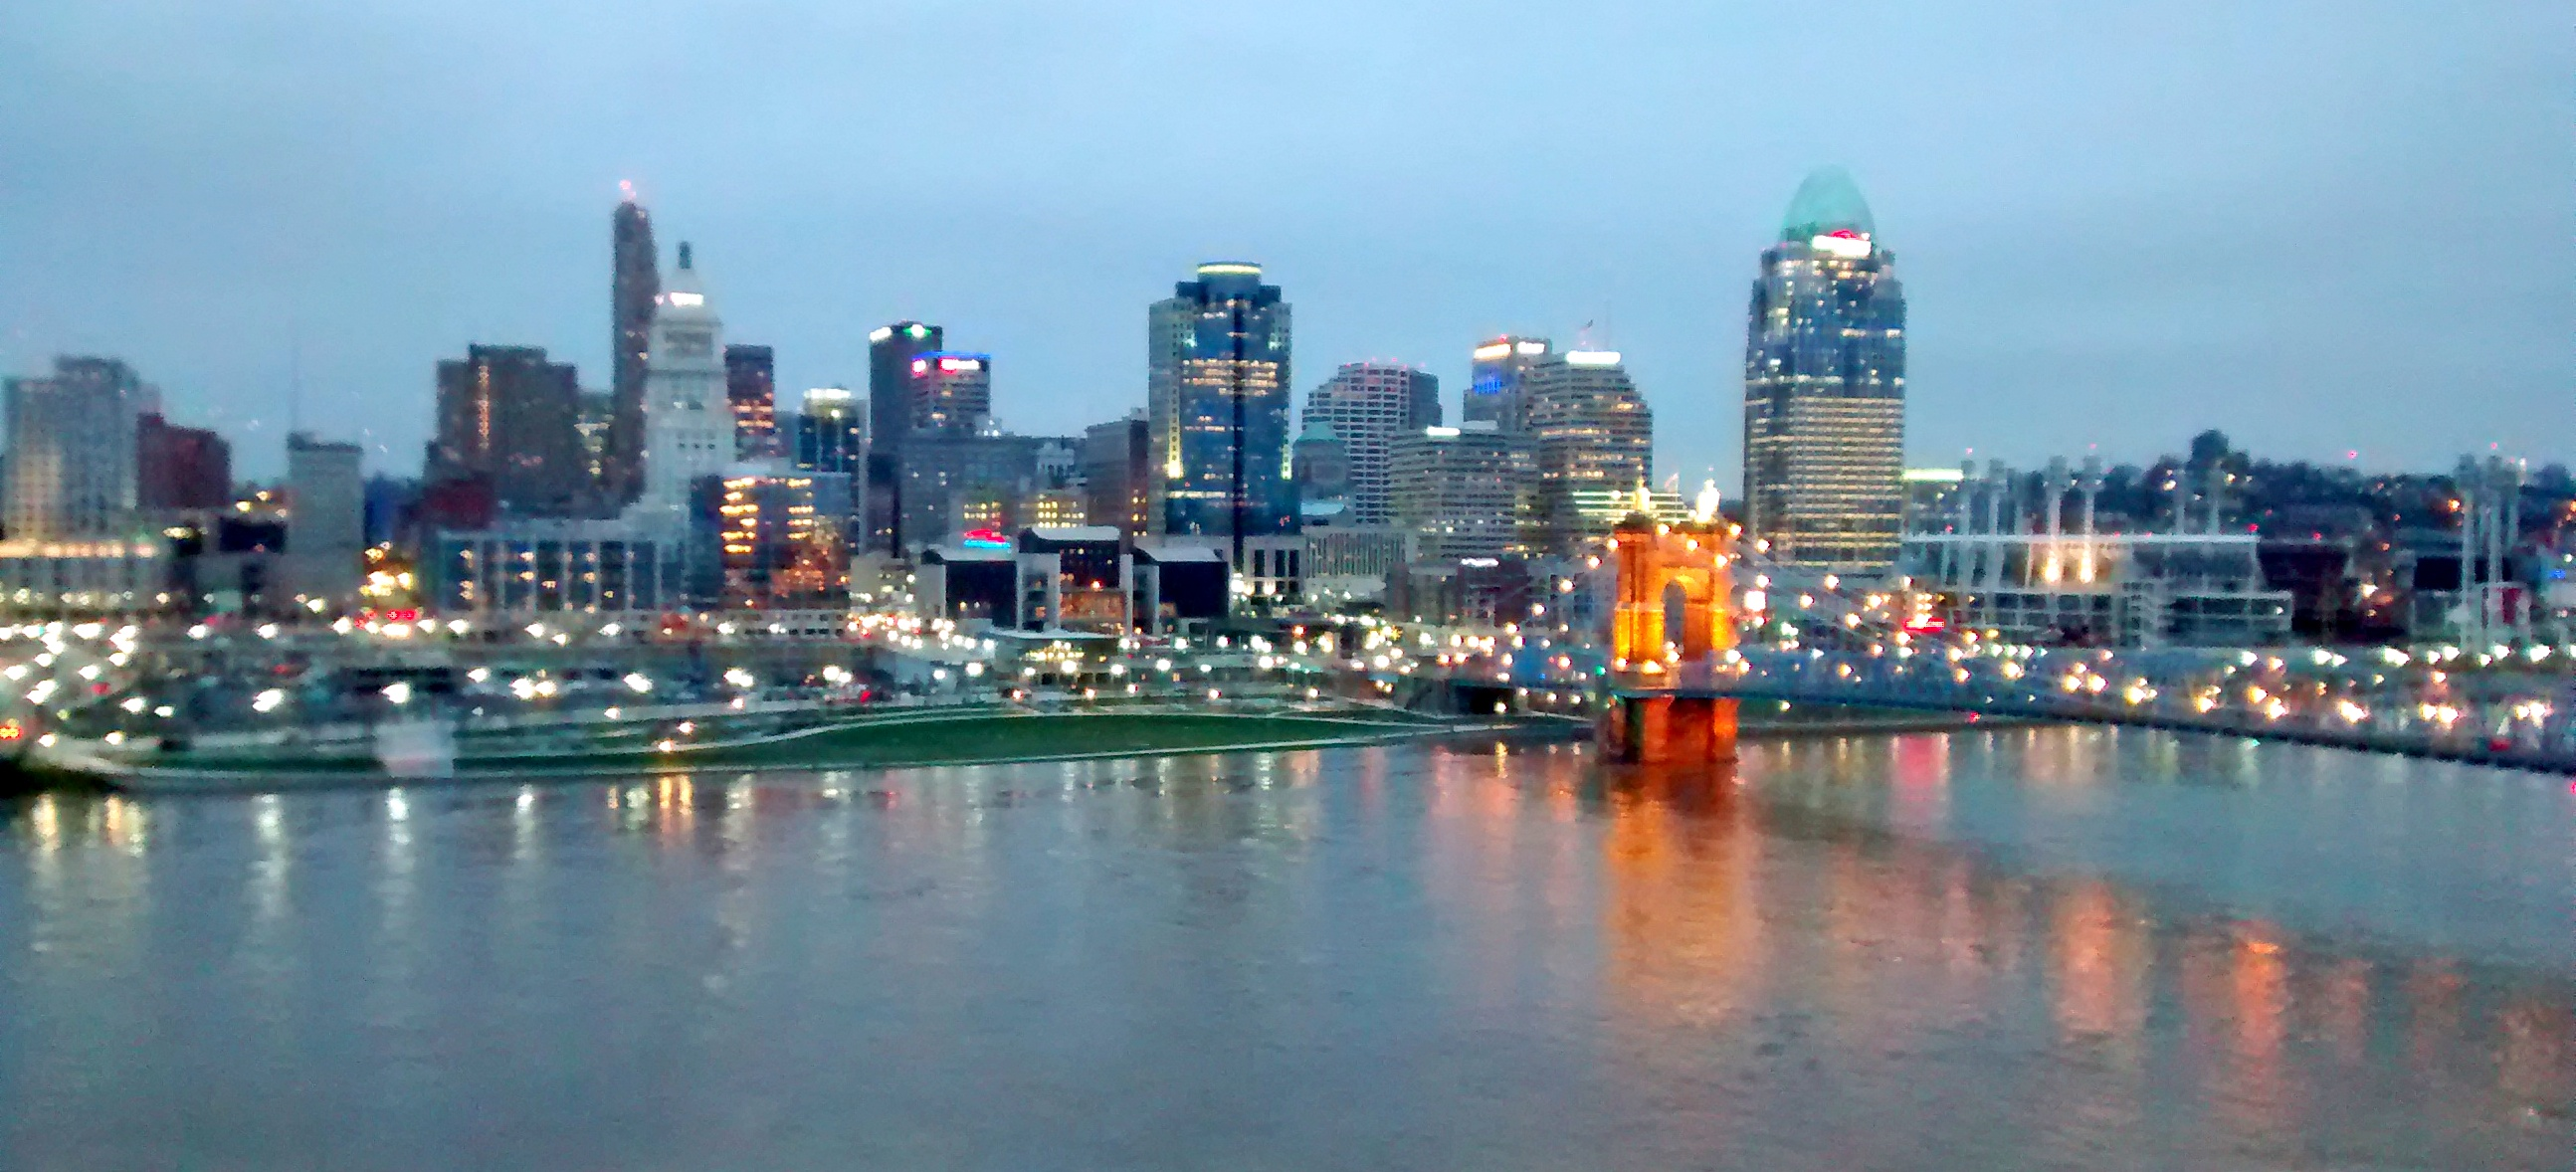 Skyline_of_Cincinnati_OH_-_panoramio-1